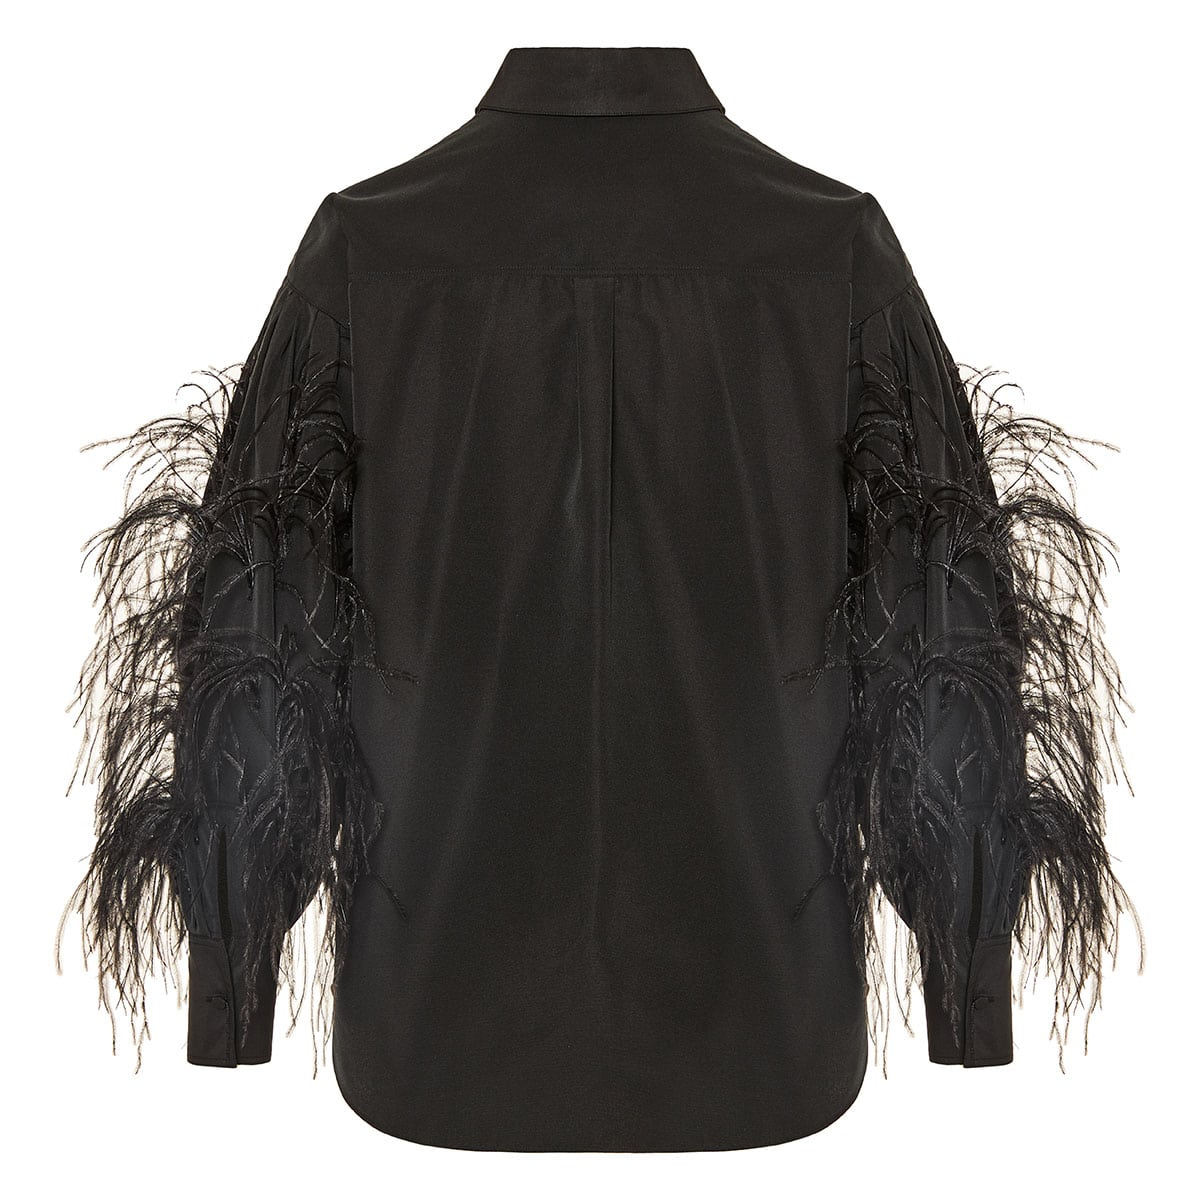 Feather-embellished oversized shirt